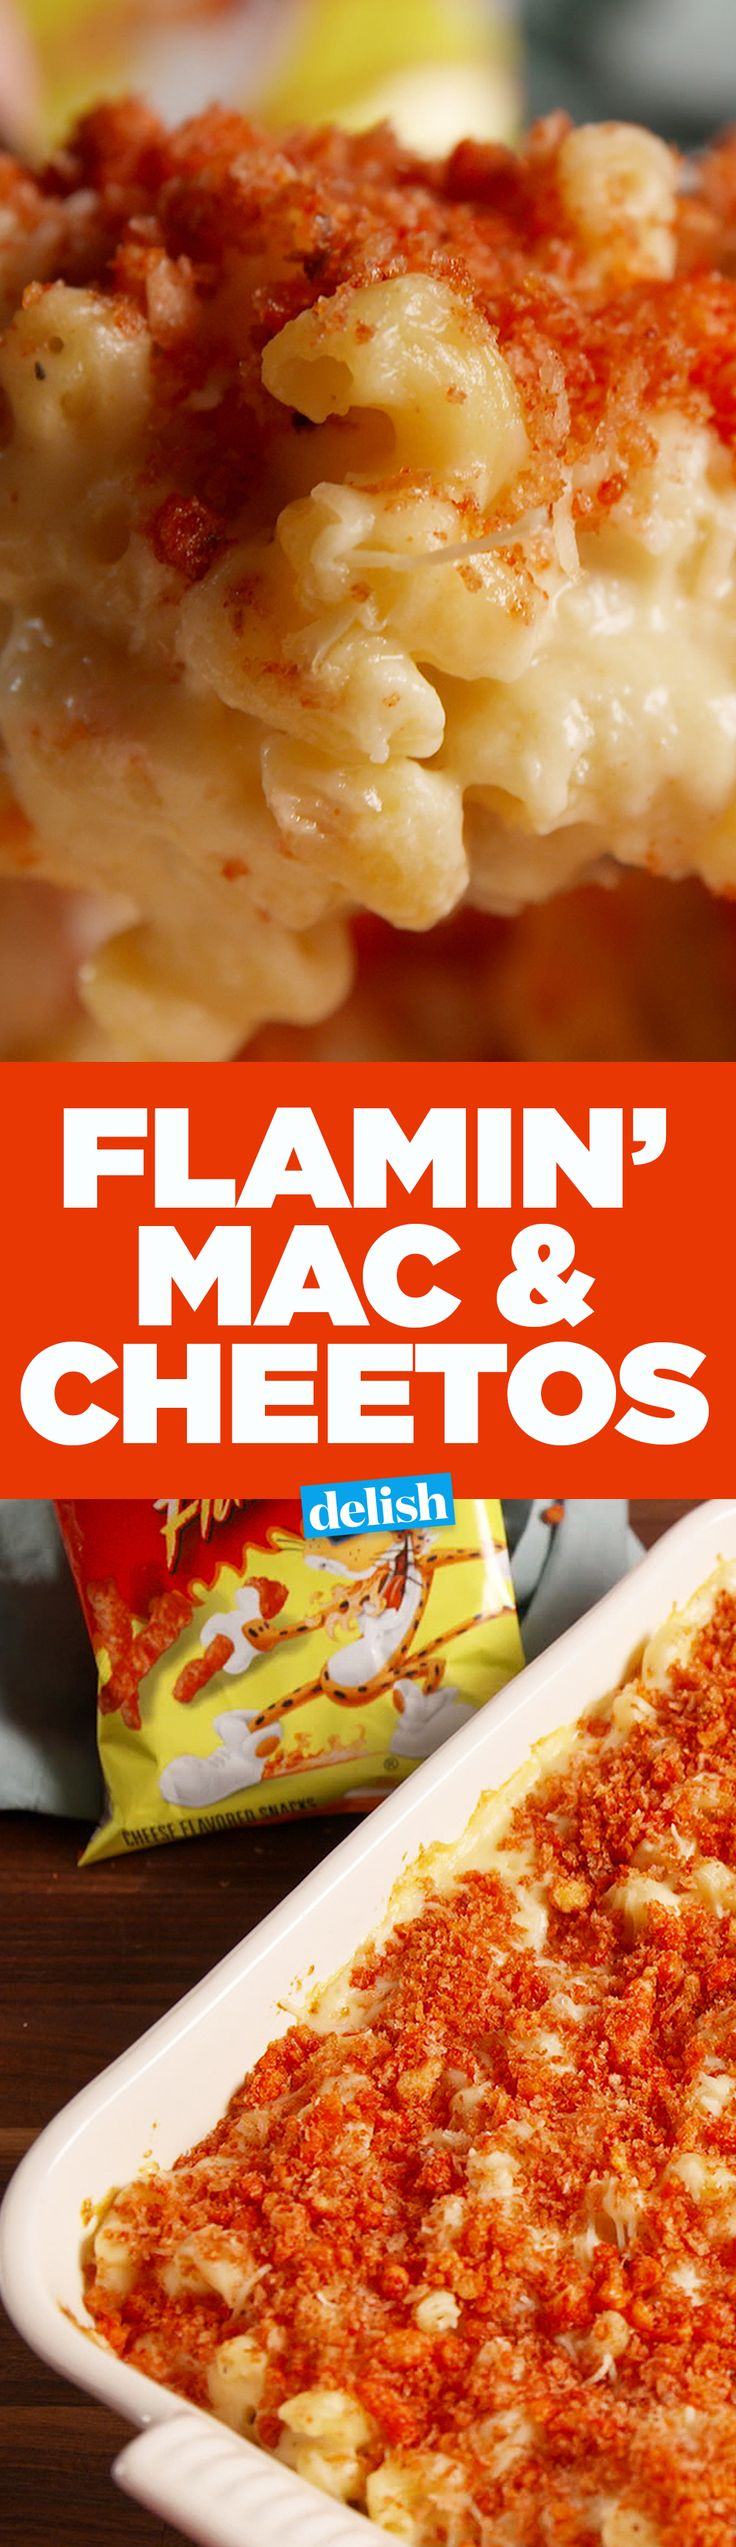 "Our Flamin' Mac & Cheetos has the hottest ""breadcrumbs"" ever. Get the recipe on Delish.com."